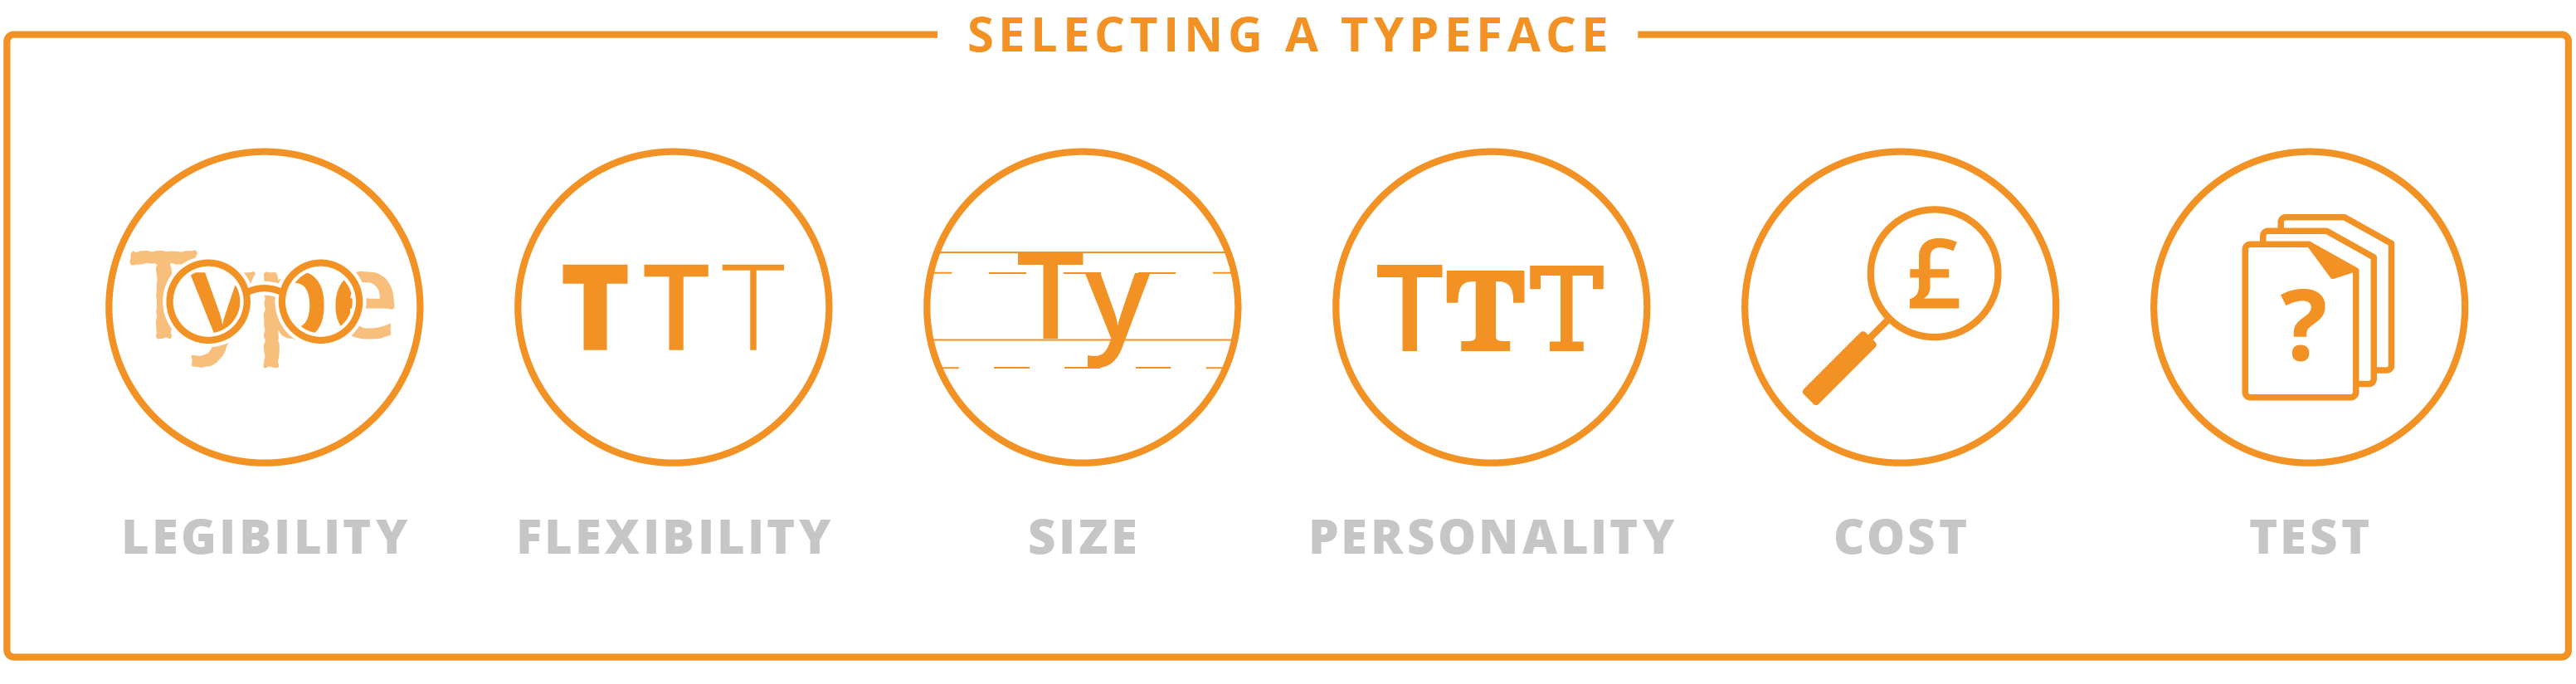 Selecting typeface